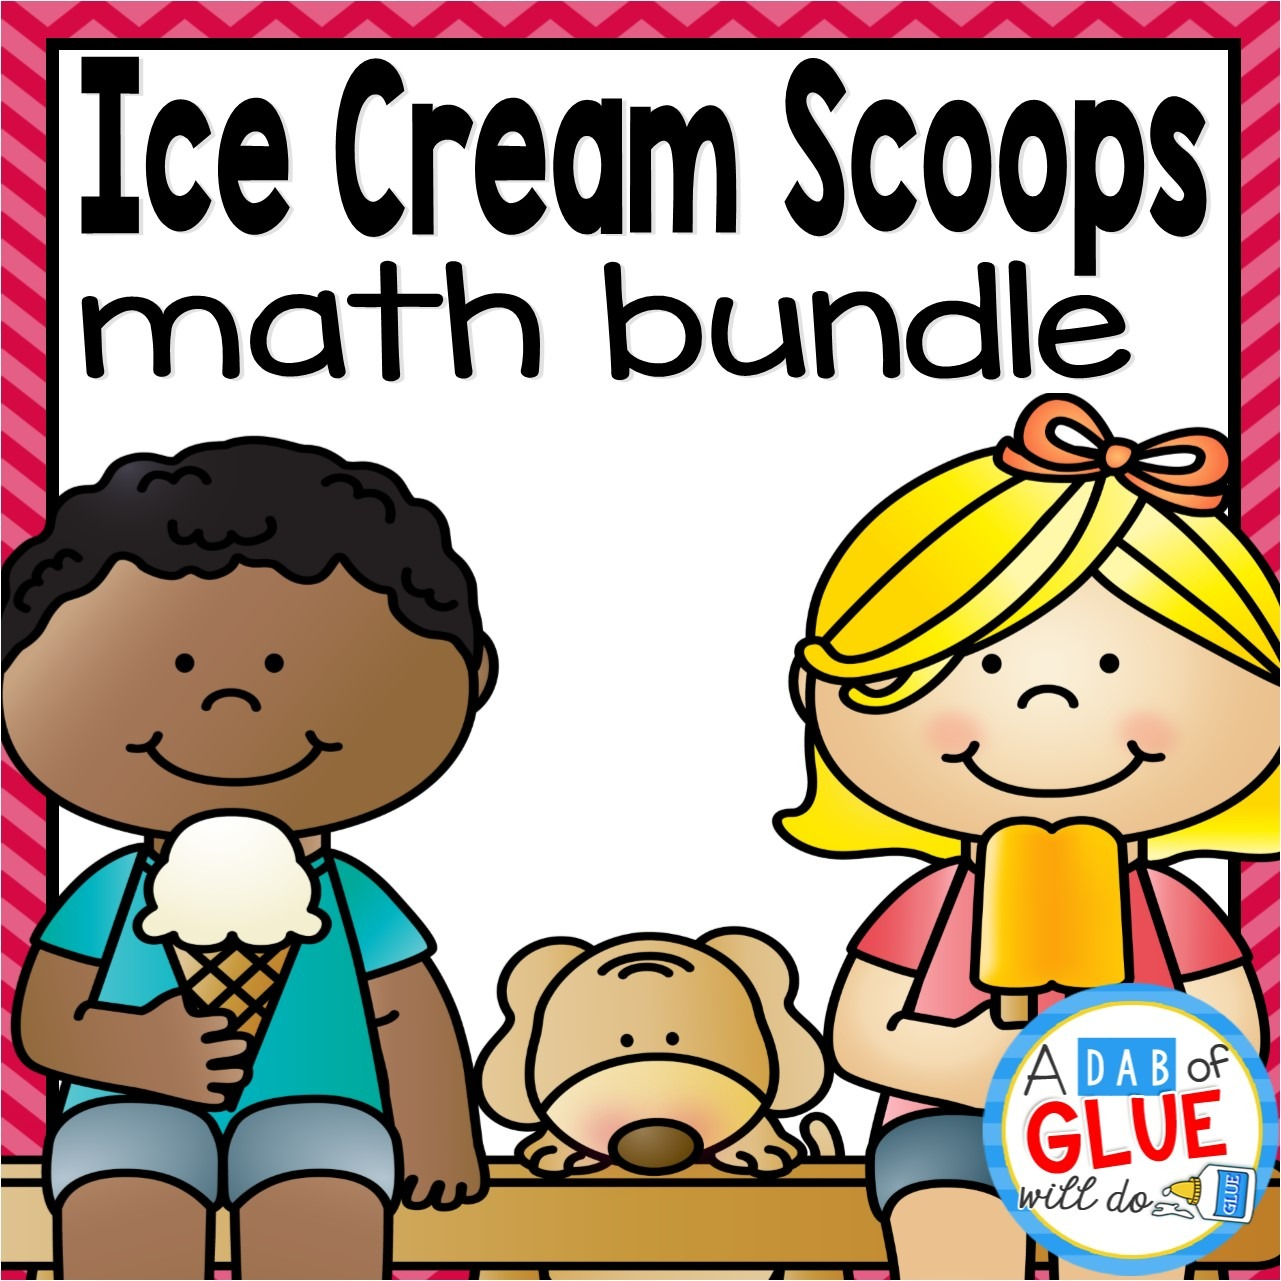 Make math fun with this Ice Cream Scoops themed math bundle that is perfect for your lower elementary aged children. Use these fun language arts summer themed worksheets to review with your Preschool, Kindergarten, and First Grade students important math concepts in a fun and interactive way. All centers come in colors AND black and white.